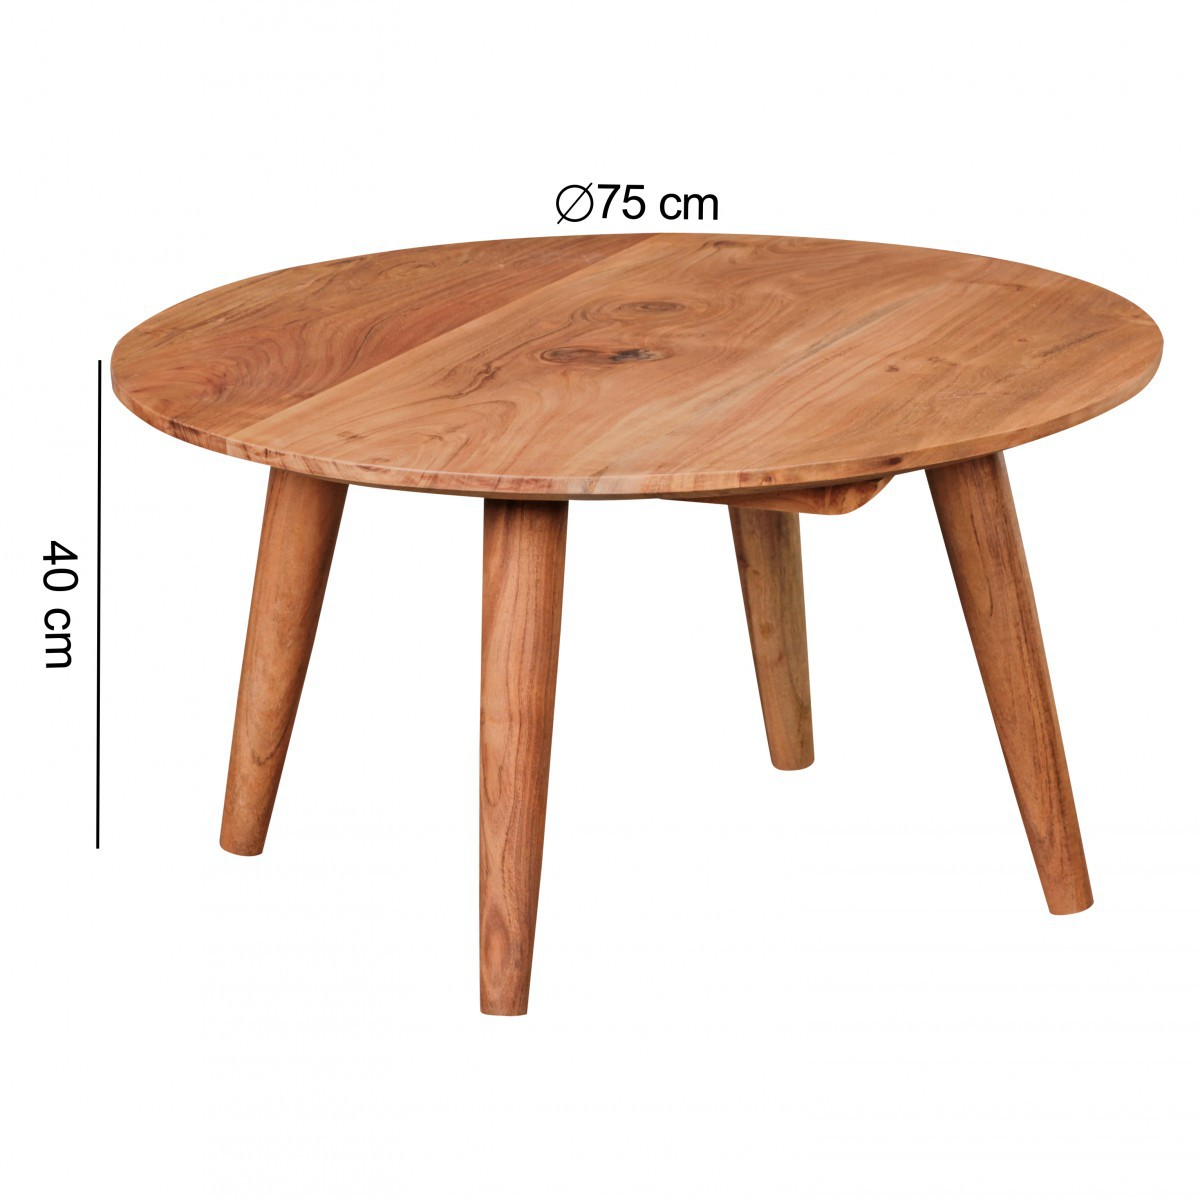 Finebuy table basse en bois massif acacia table basse ronde 75 x 40 cm ferme - Table basse ronde noire laquee ...